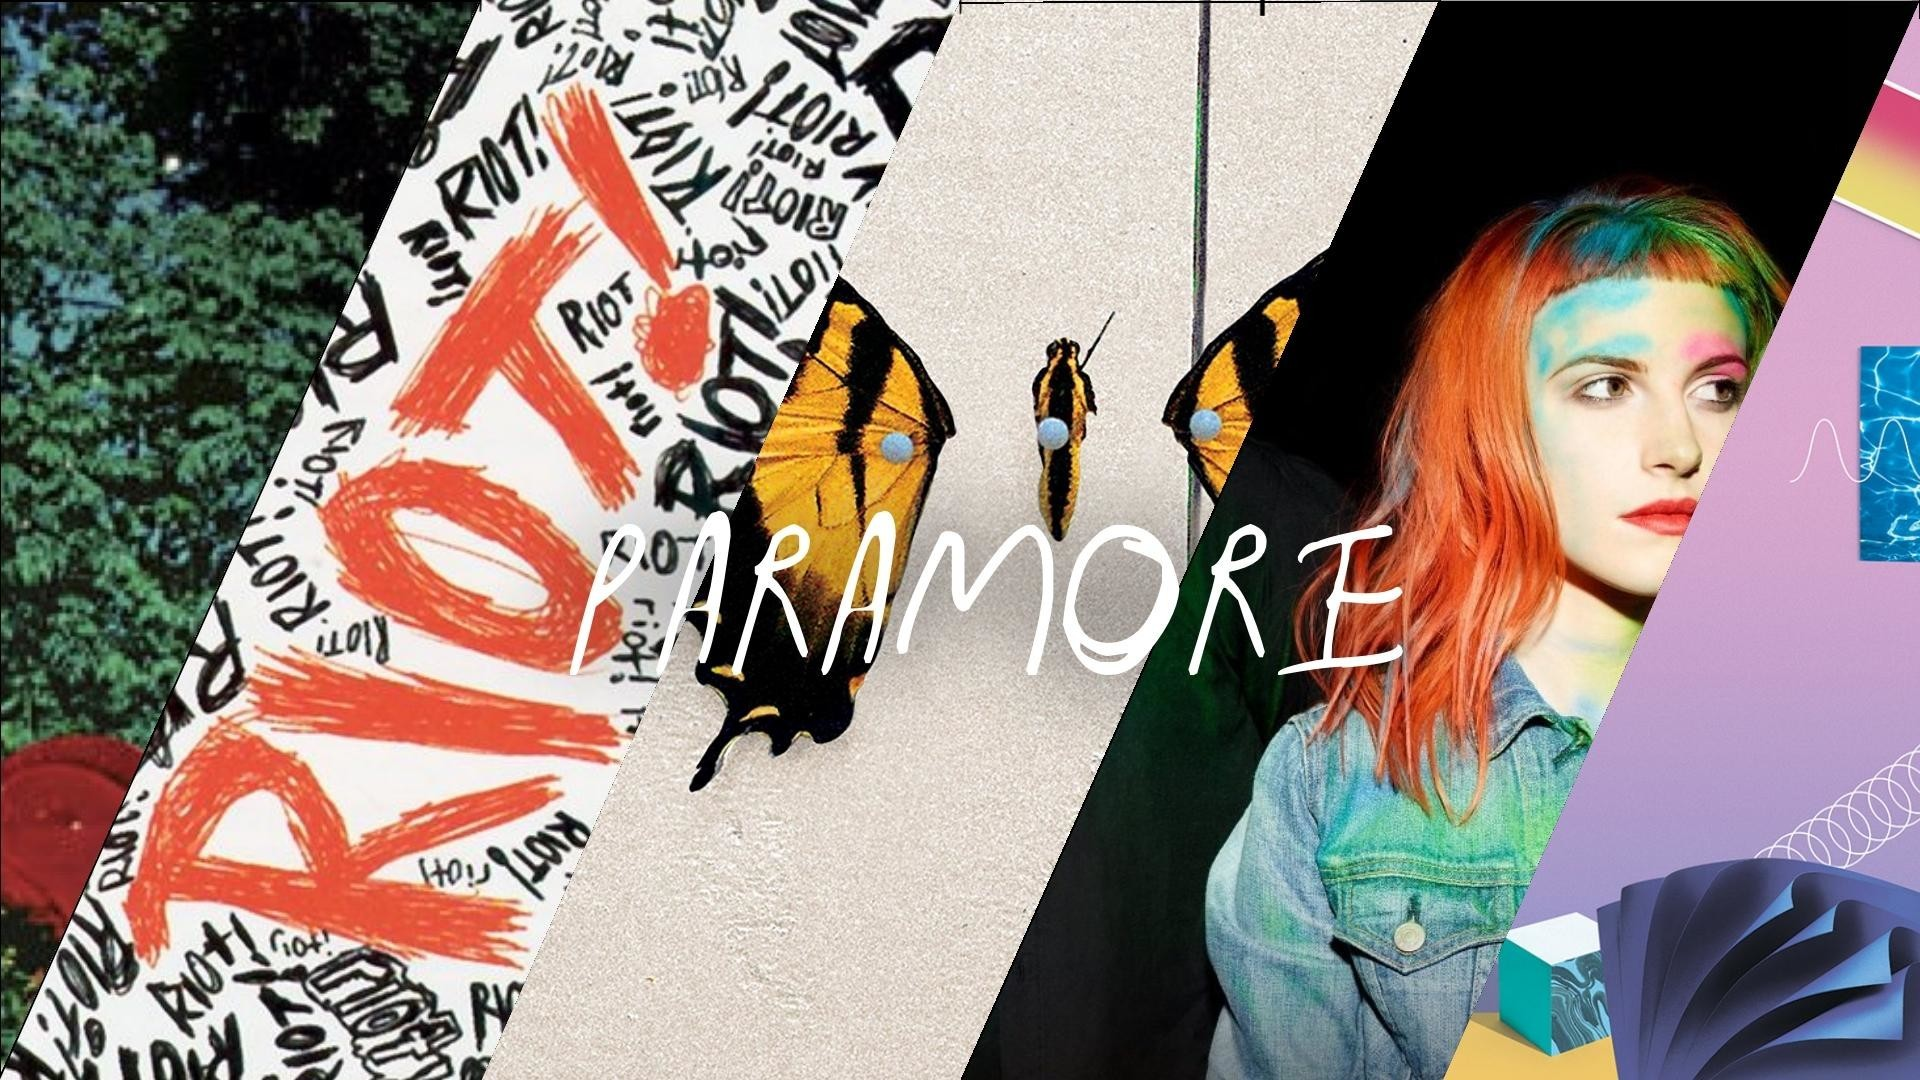 1920x1080 1920x1200 Paramore iPhone Wallpapers by Samuel Dean #10